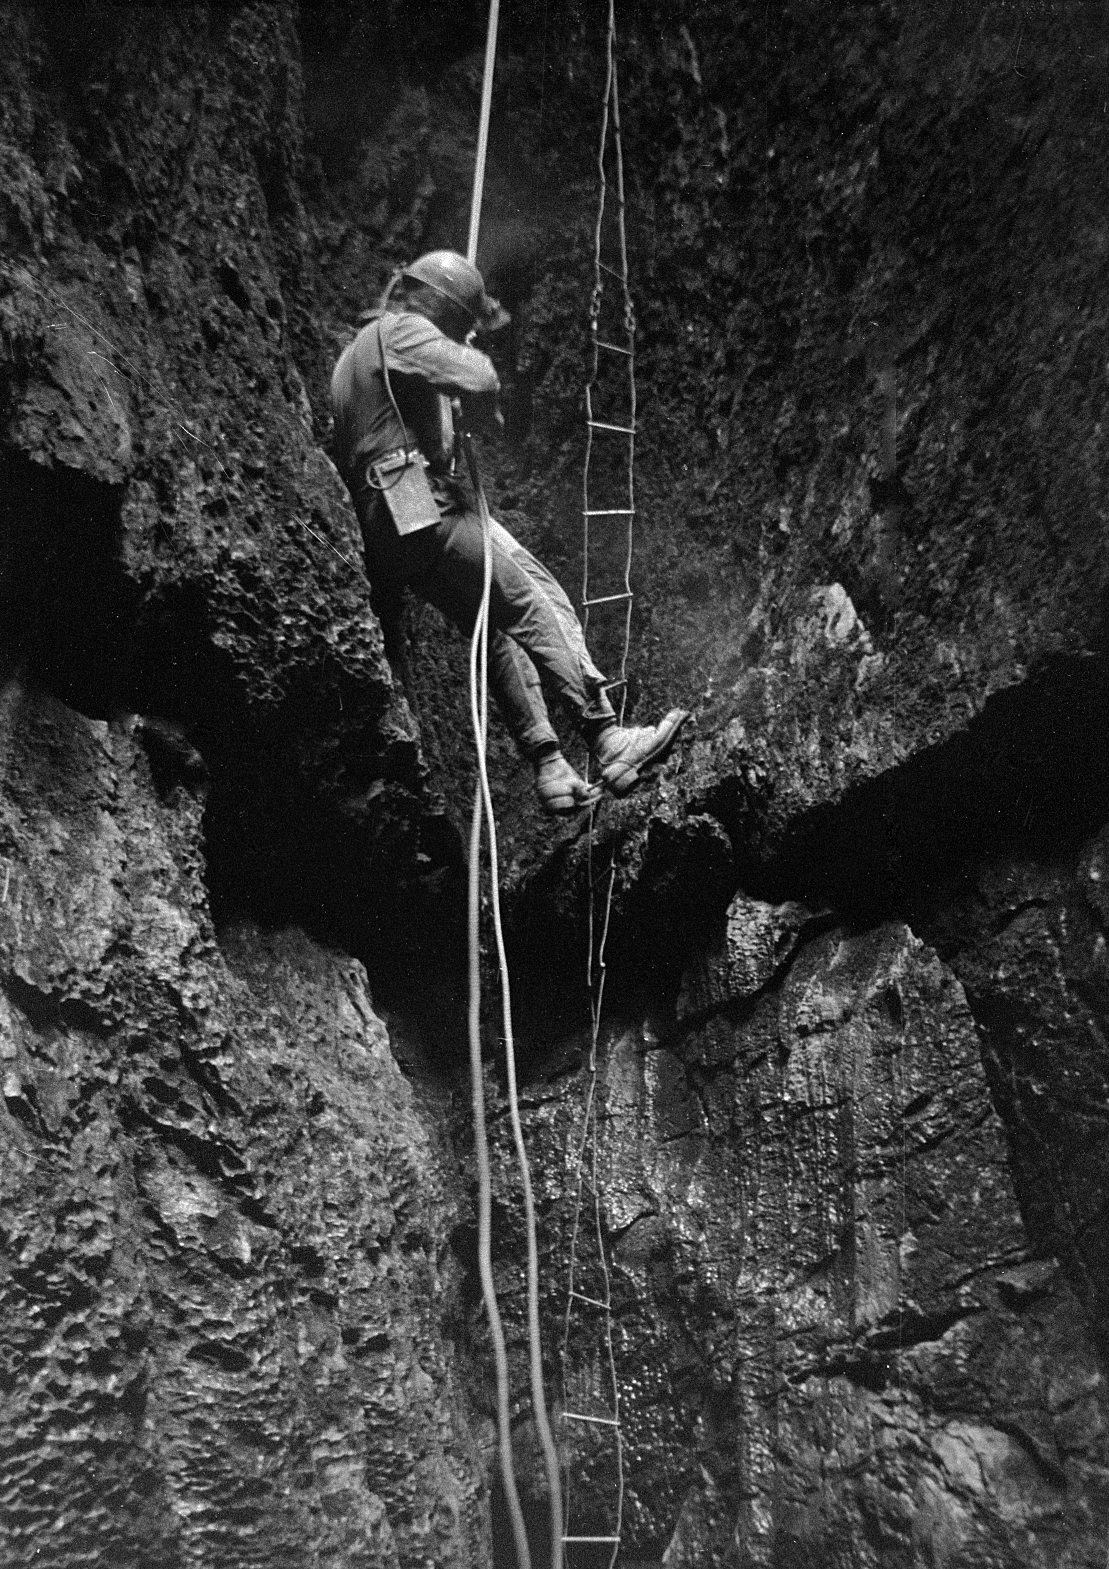 Meregill Hole 25th March 1972. The others abseiled with shiny new figure of eights whilst I was shown how to wrap my rope round a krab to do a classic abseil. We laddered out.